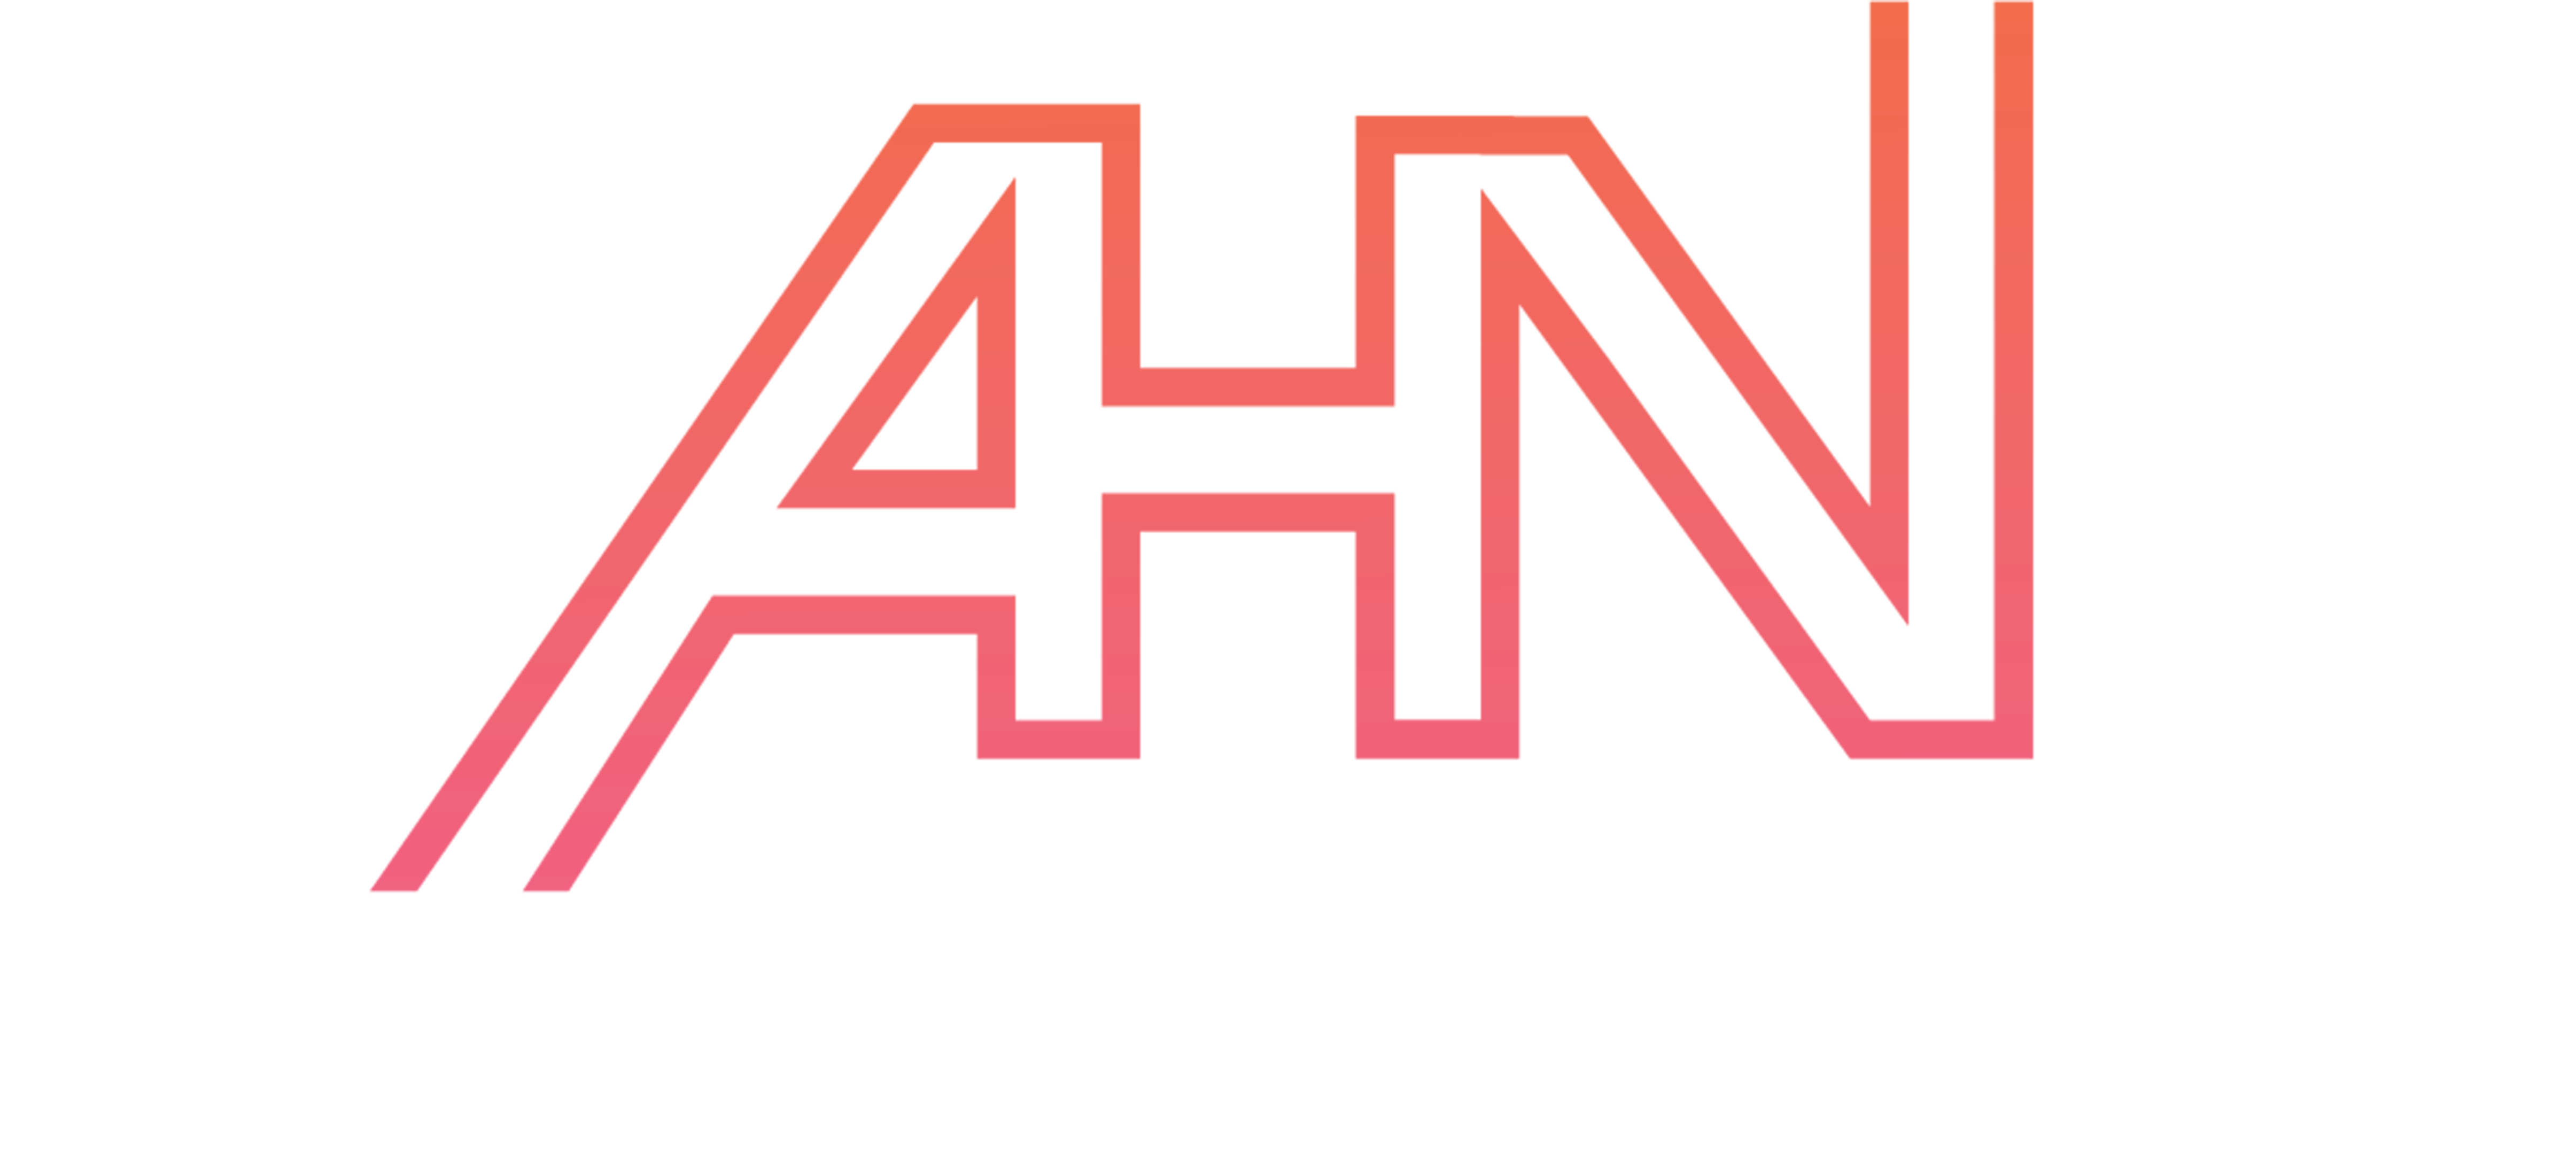 asianhustlenetwork